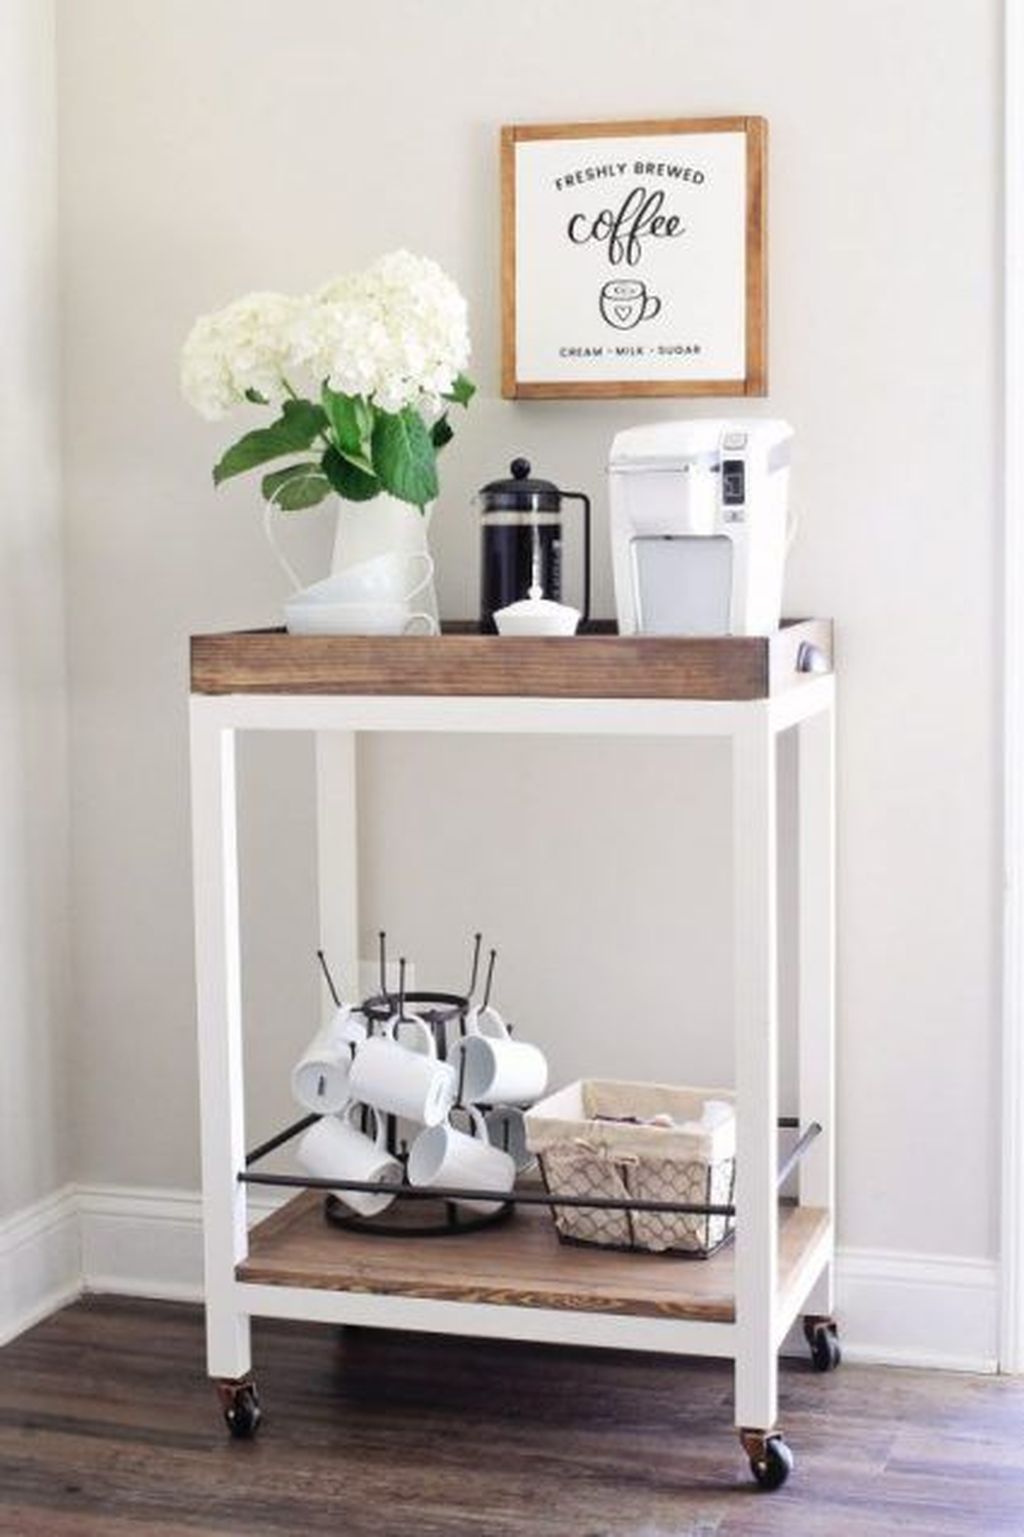 Magnificient Home Coffee Bar Design Ideas You Must Have 33